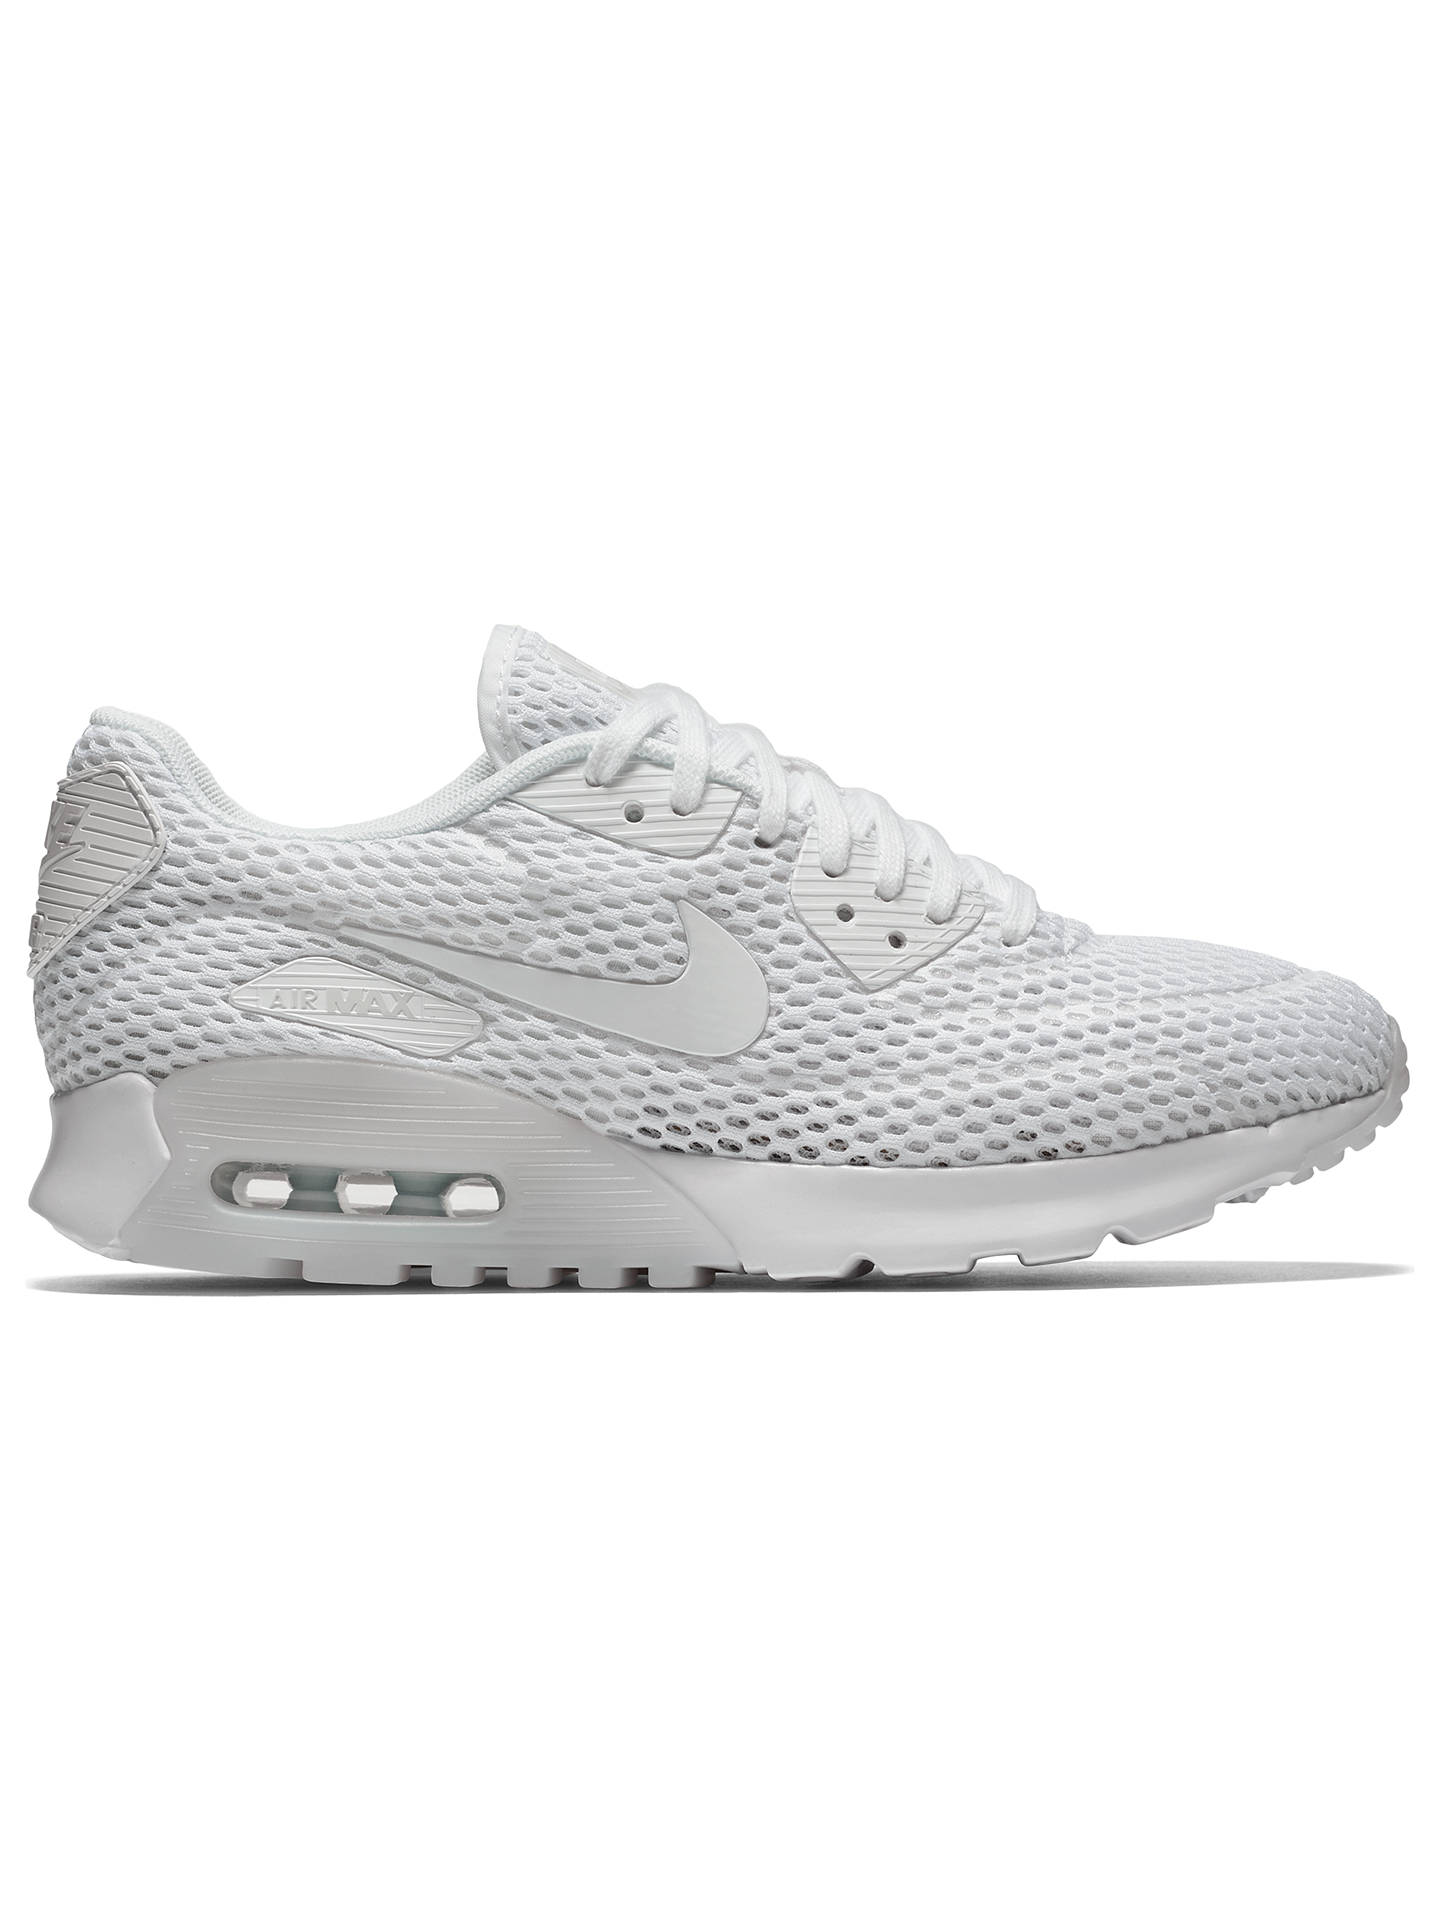 the best attitude 278f3 cb68c Buy Nike Air Max 90 Ultra BR Women's Trainers, White/Pure Platinum, 4 ...